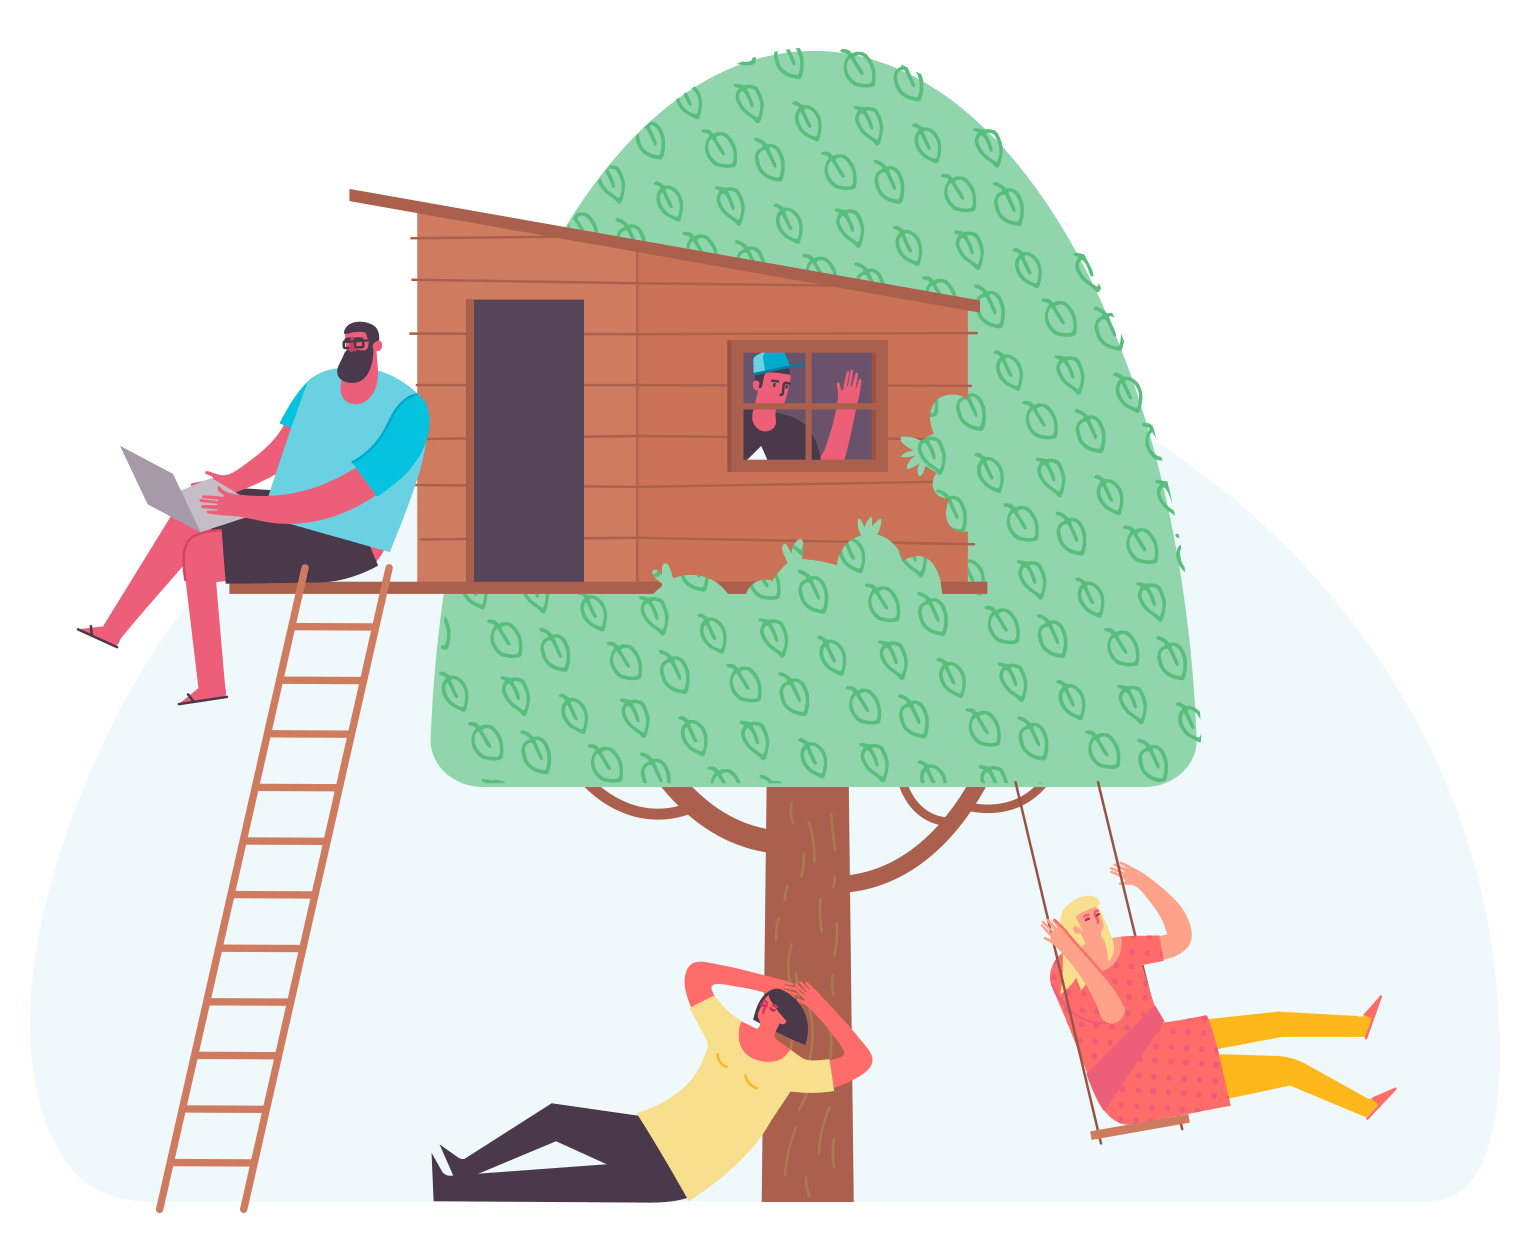 A group of people relaxing in the tree-house they just built